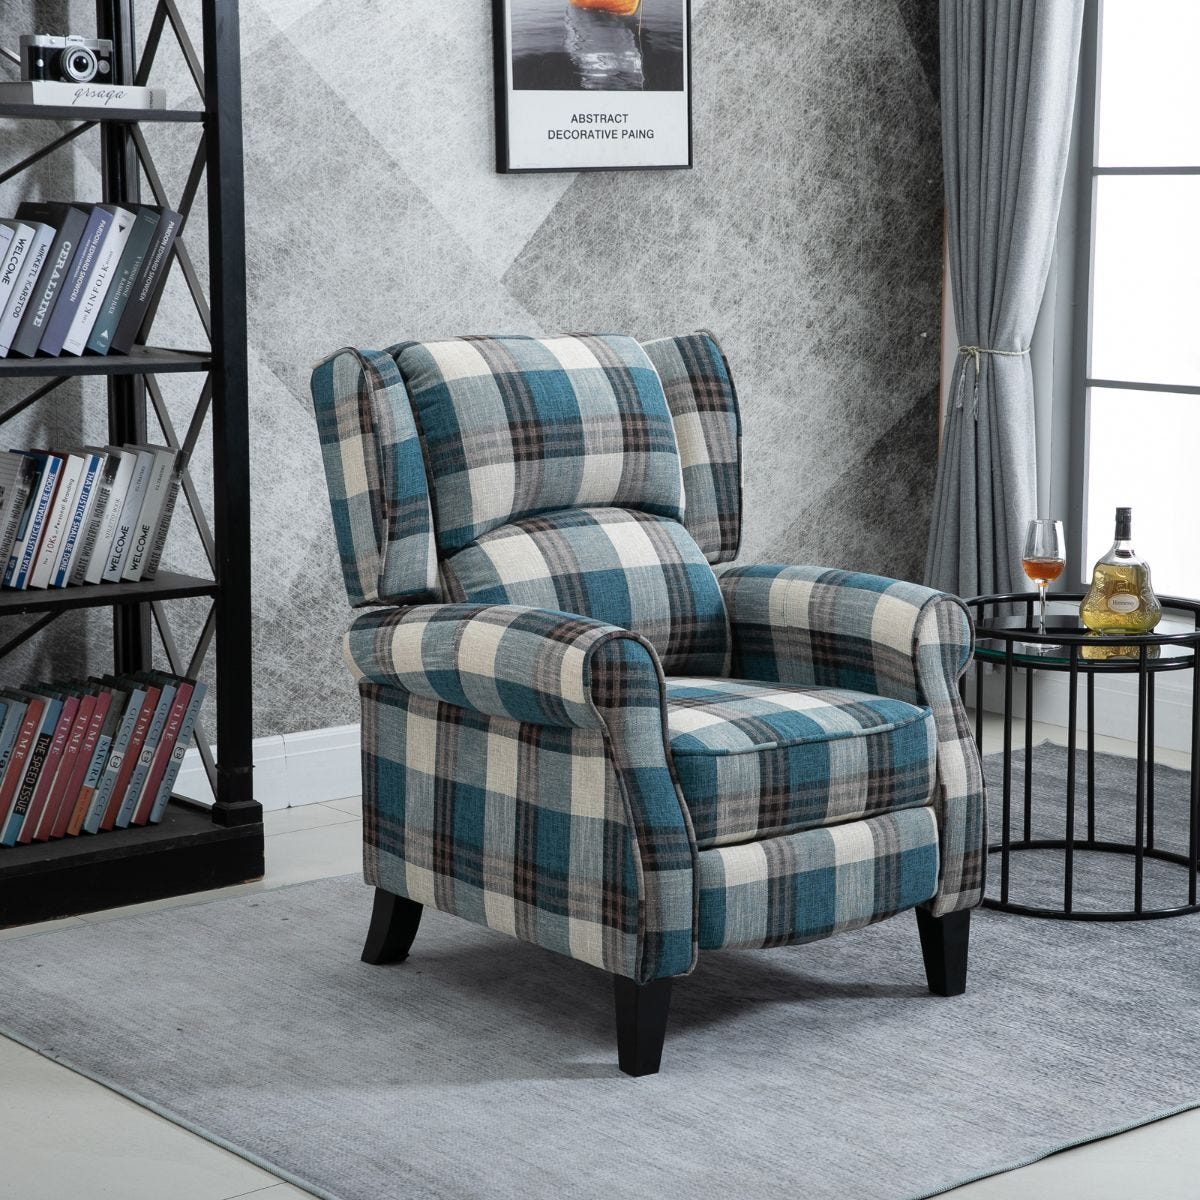 Manual Reclining Armchair Padded Seat With Armrest Blue And Grey Tartan